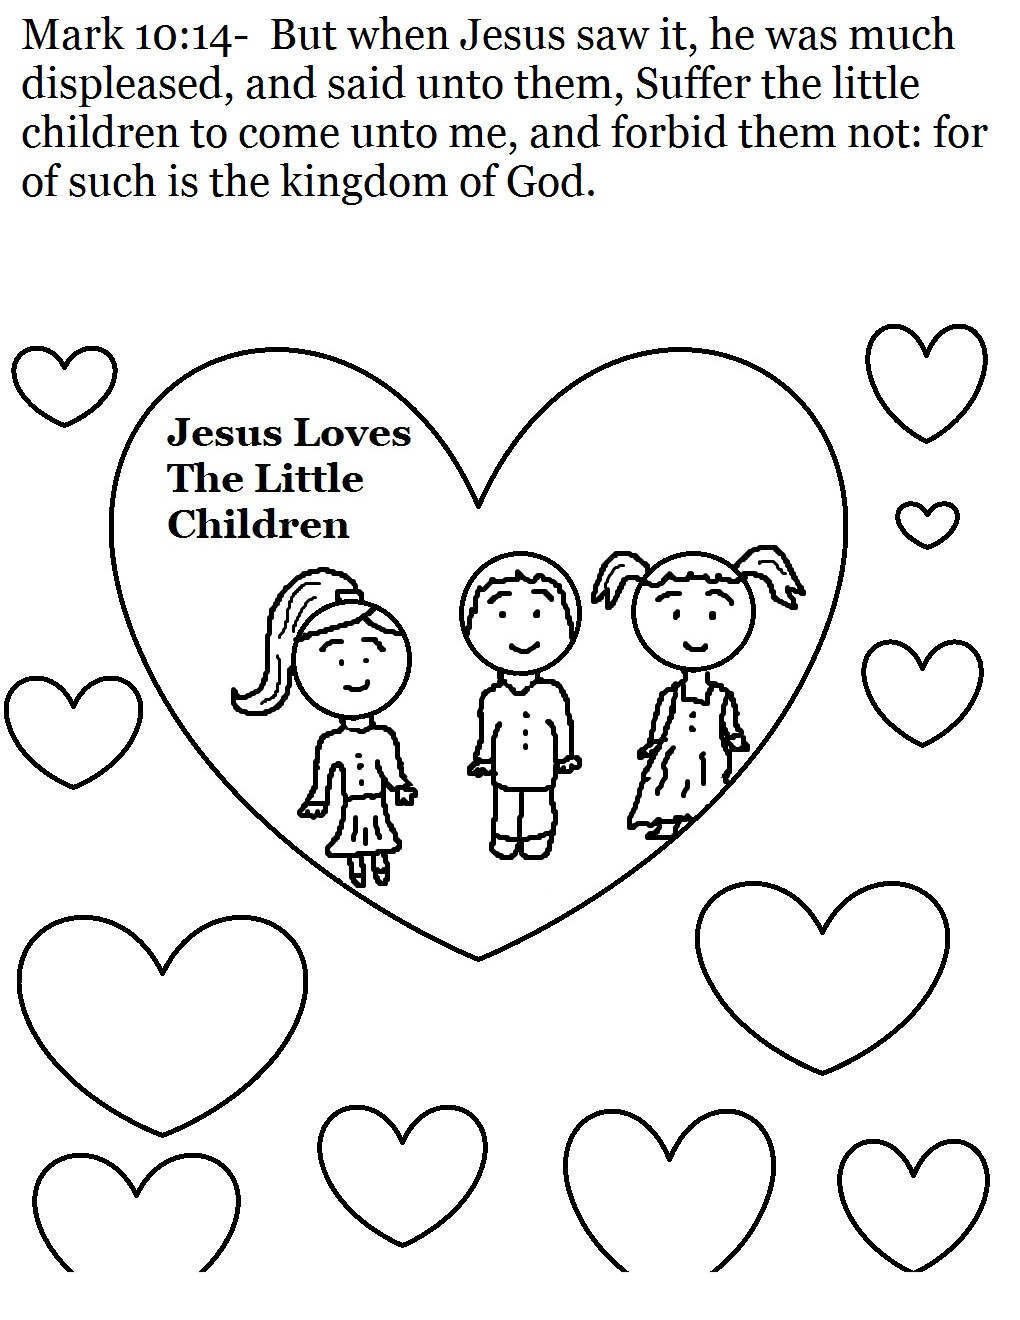 Jesus Loves Me Coloring Pages Love e Hand Drawing - Free ...